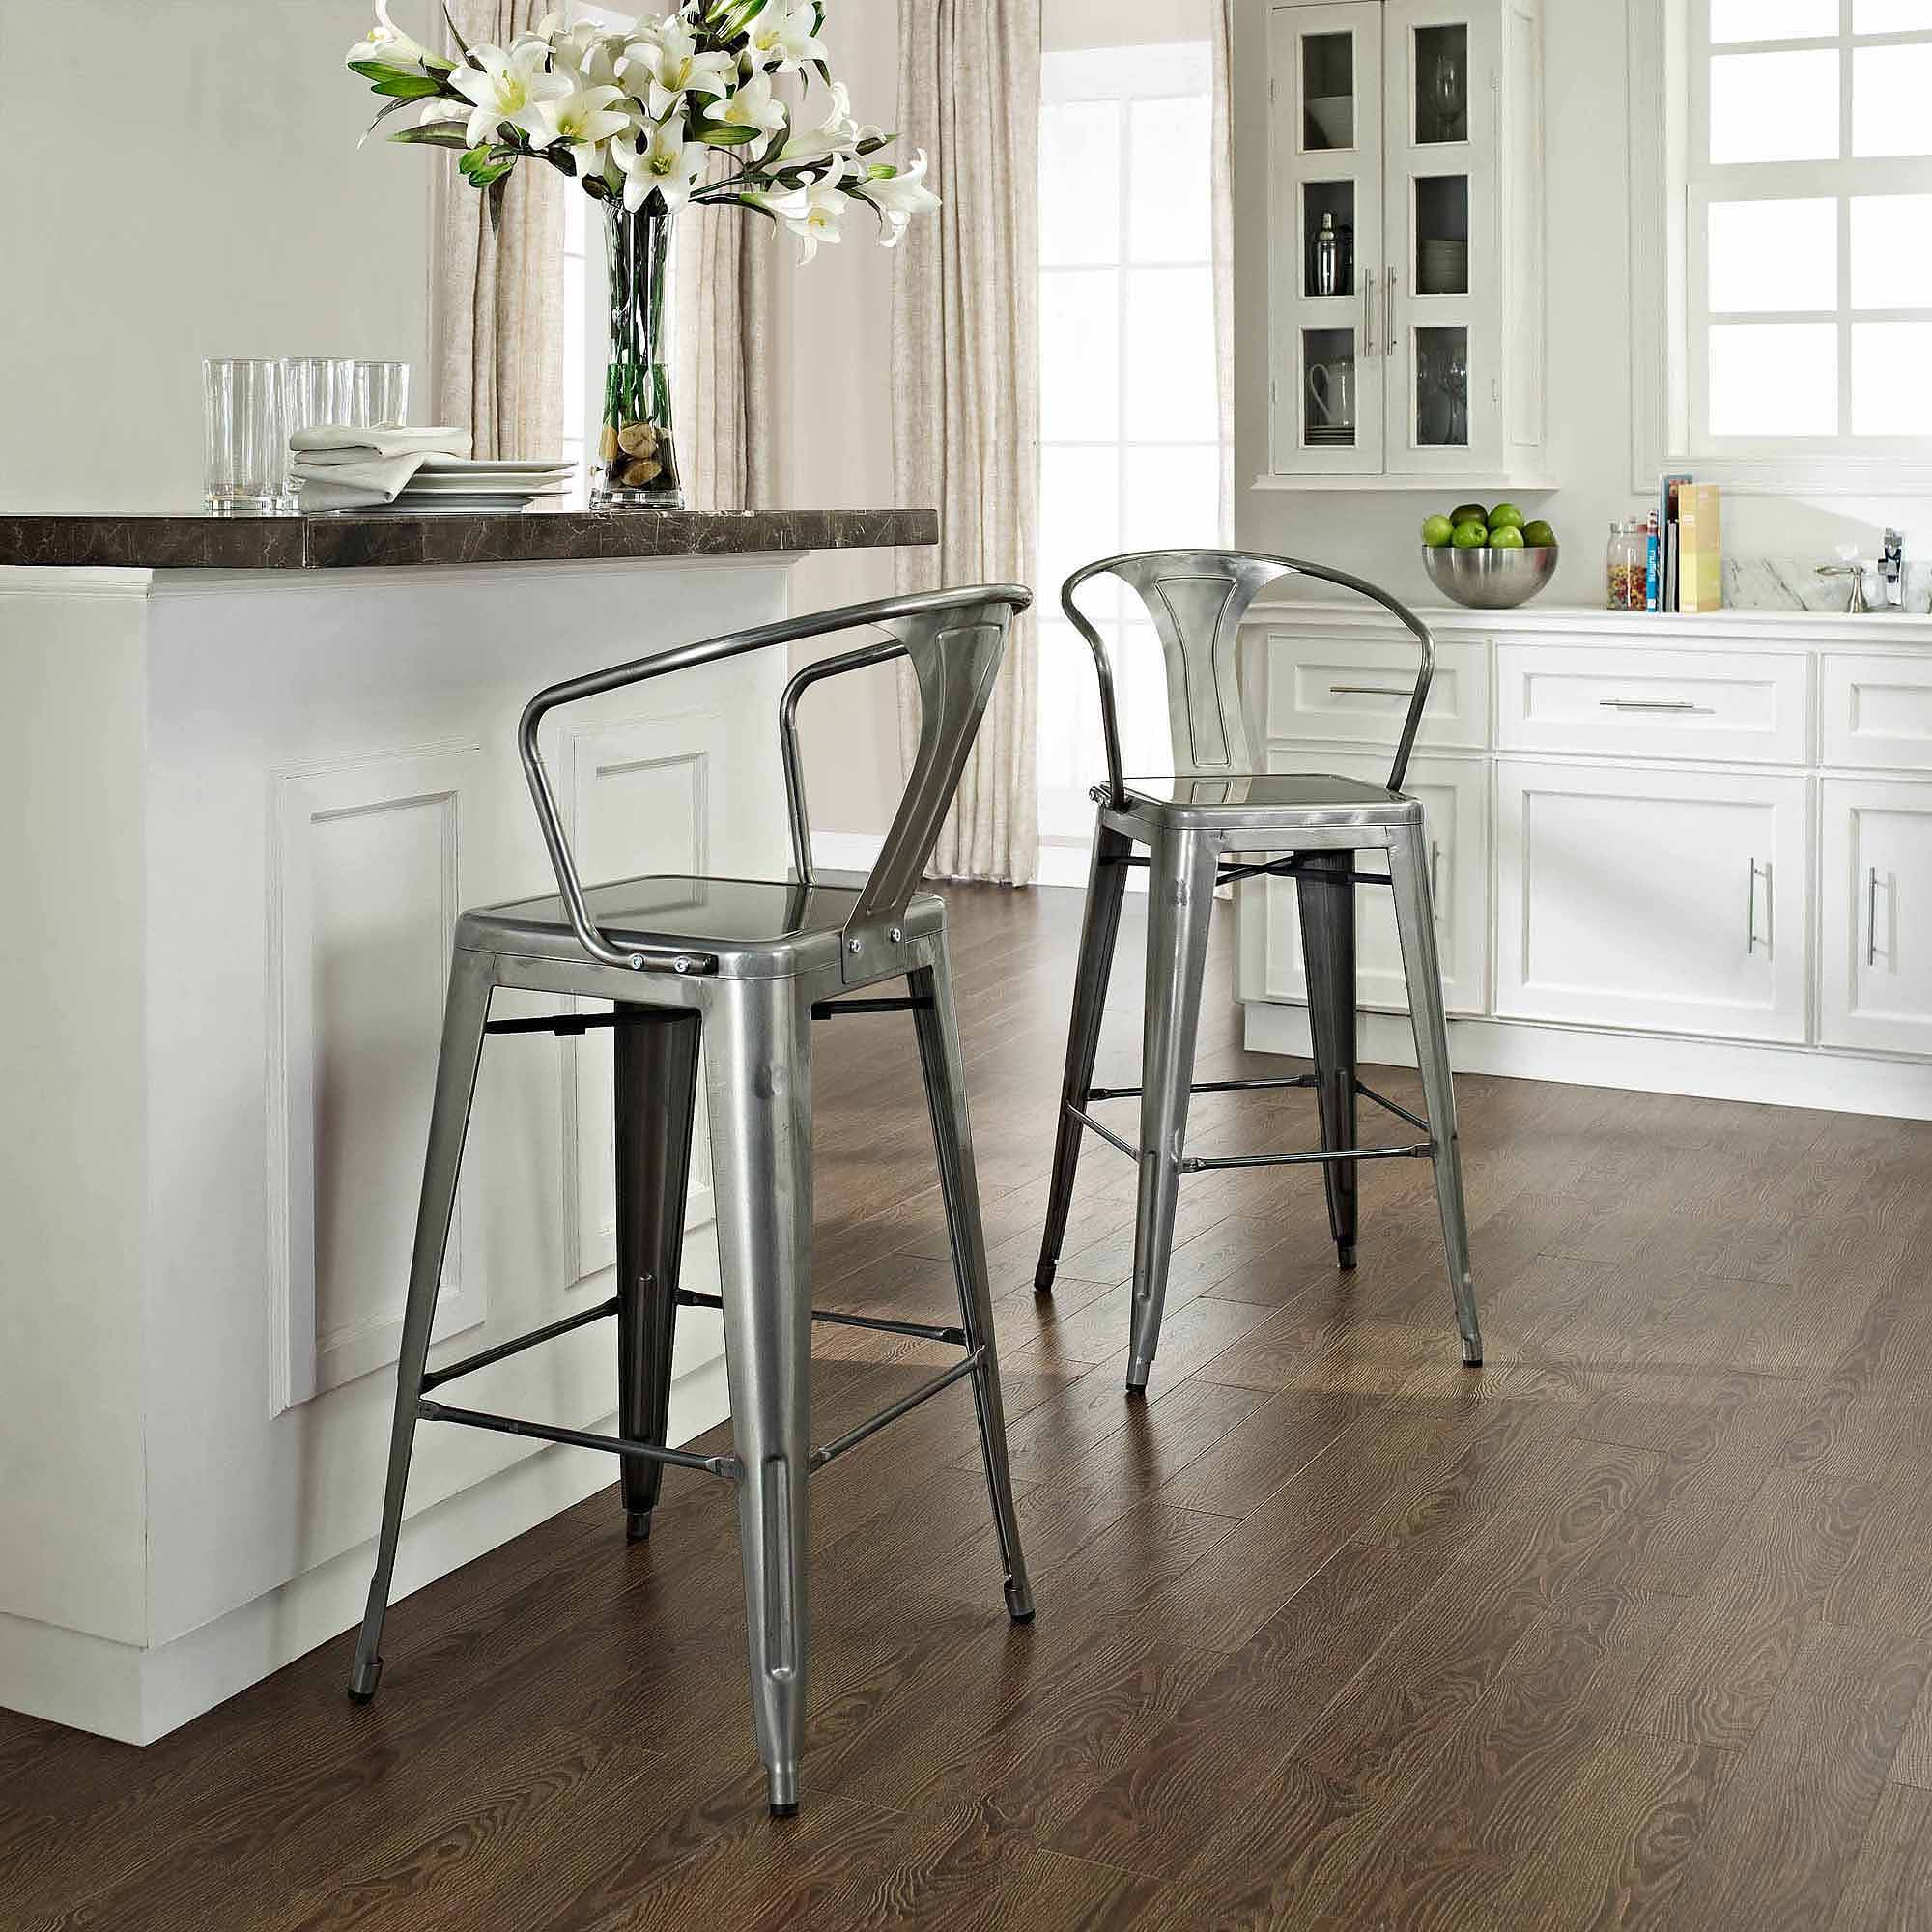 nguni for horn stool height chairs kitchen best bar inspired stools home design counter